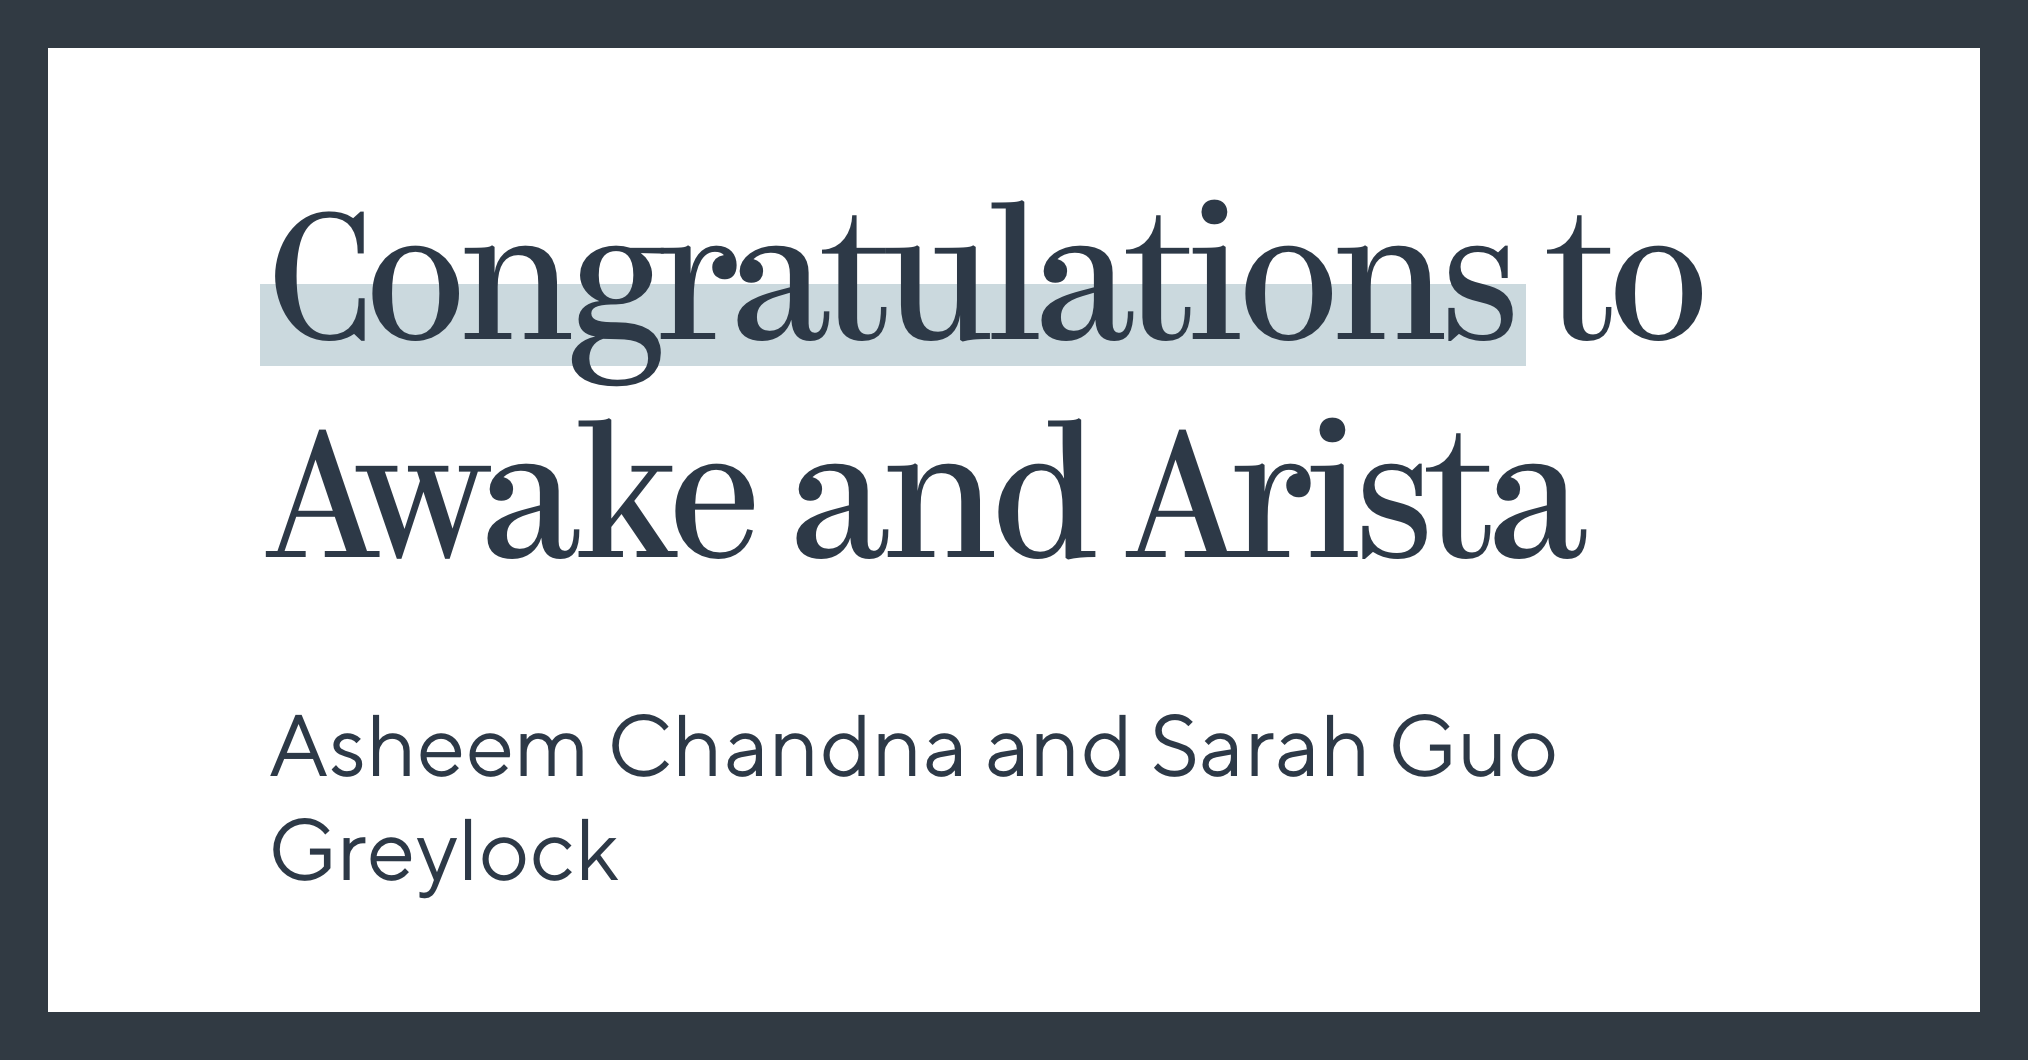 Congratulations to Awake and Arista